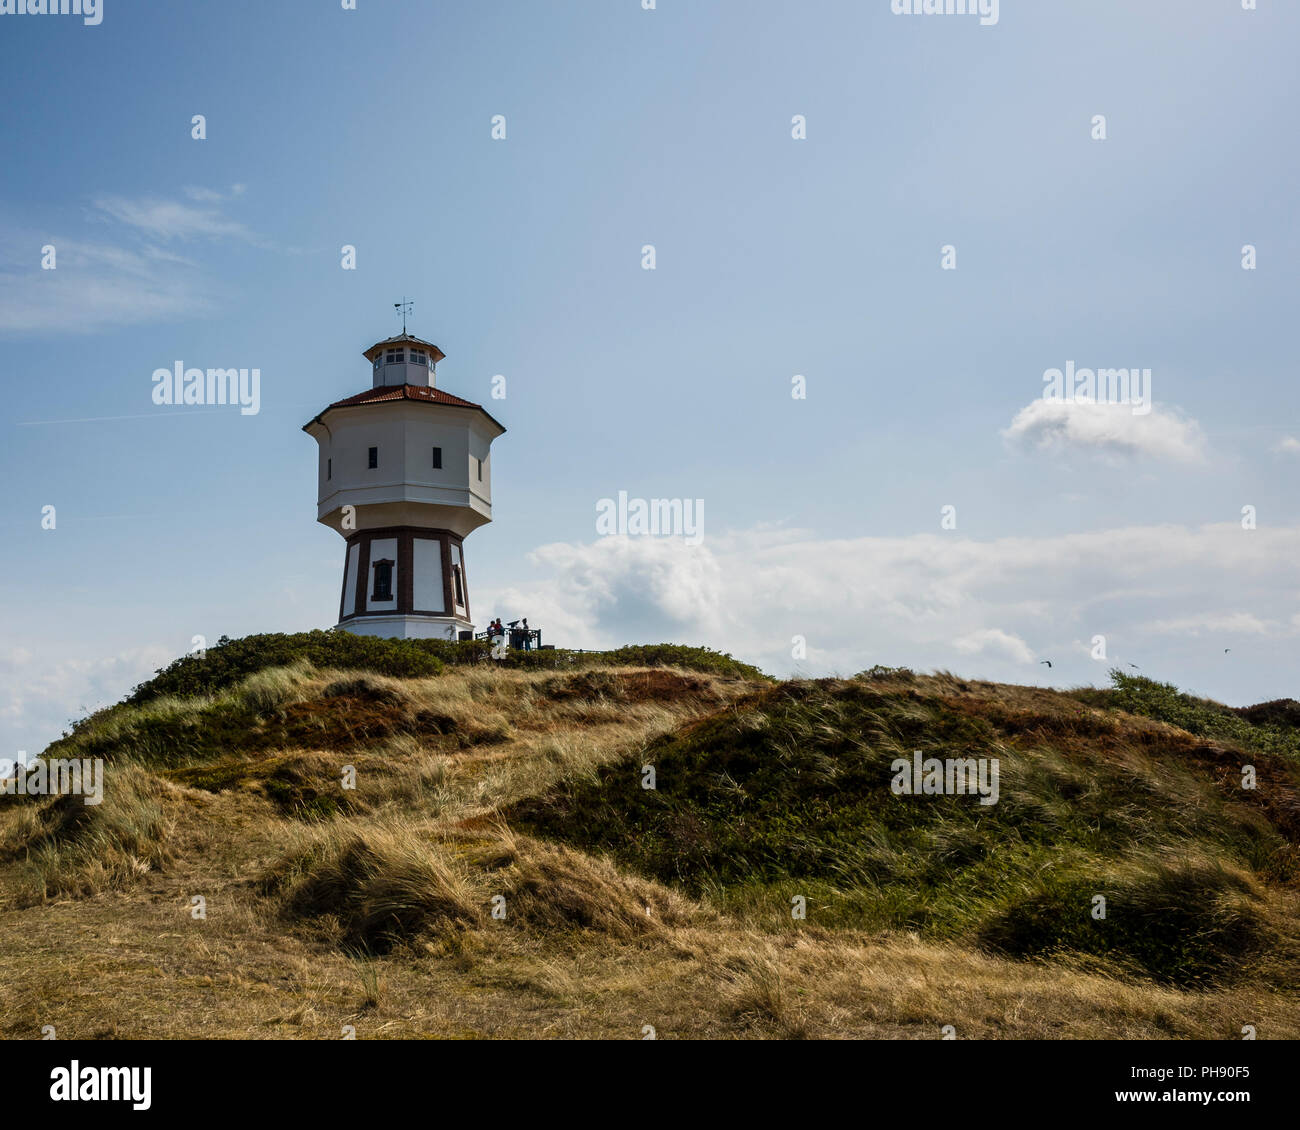 Water Tower, Langeoog. Germany, Deutschland.  A pathway leads towards a tourist attraction, the iconic white water tower - Wasserturm. The grass on the sand dunes have been bleached by the sun during the summer's heat wave.  The photograph is back-lit creating a light blue sky and deep shadows cast towards the viewer - Stock Image